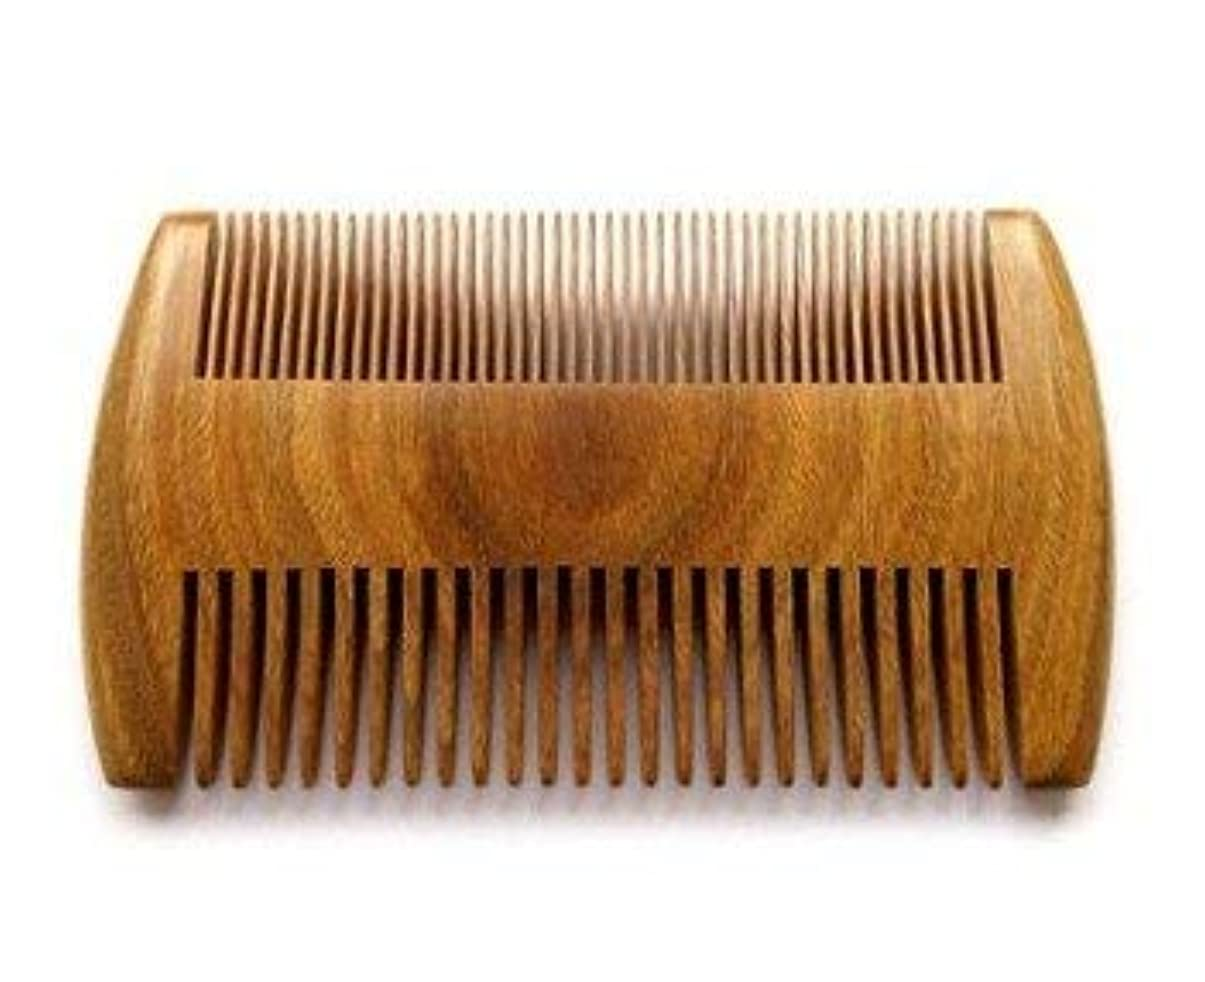 Myhsmooth GS-SM-NF Handmade Natural Green Sandalwood No Static Comb Pocket Comb Perfect Beard Comb with Aromatic...